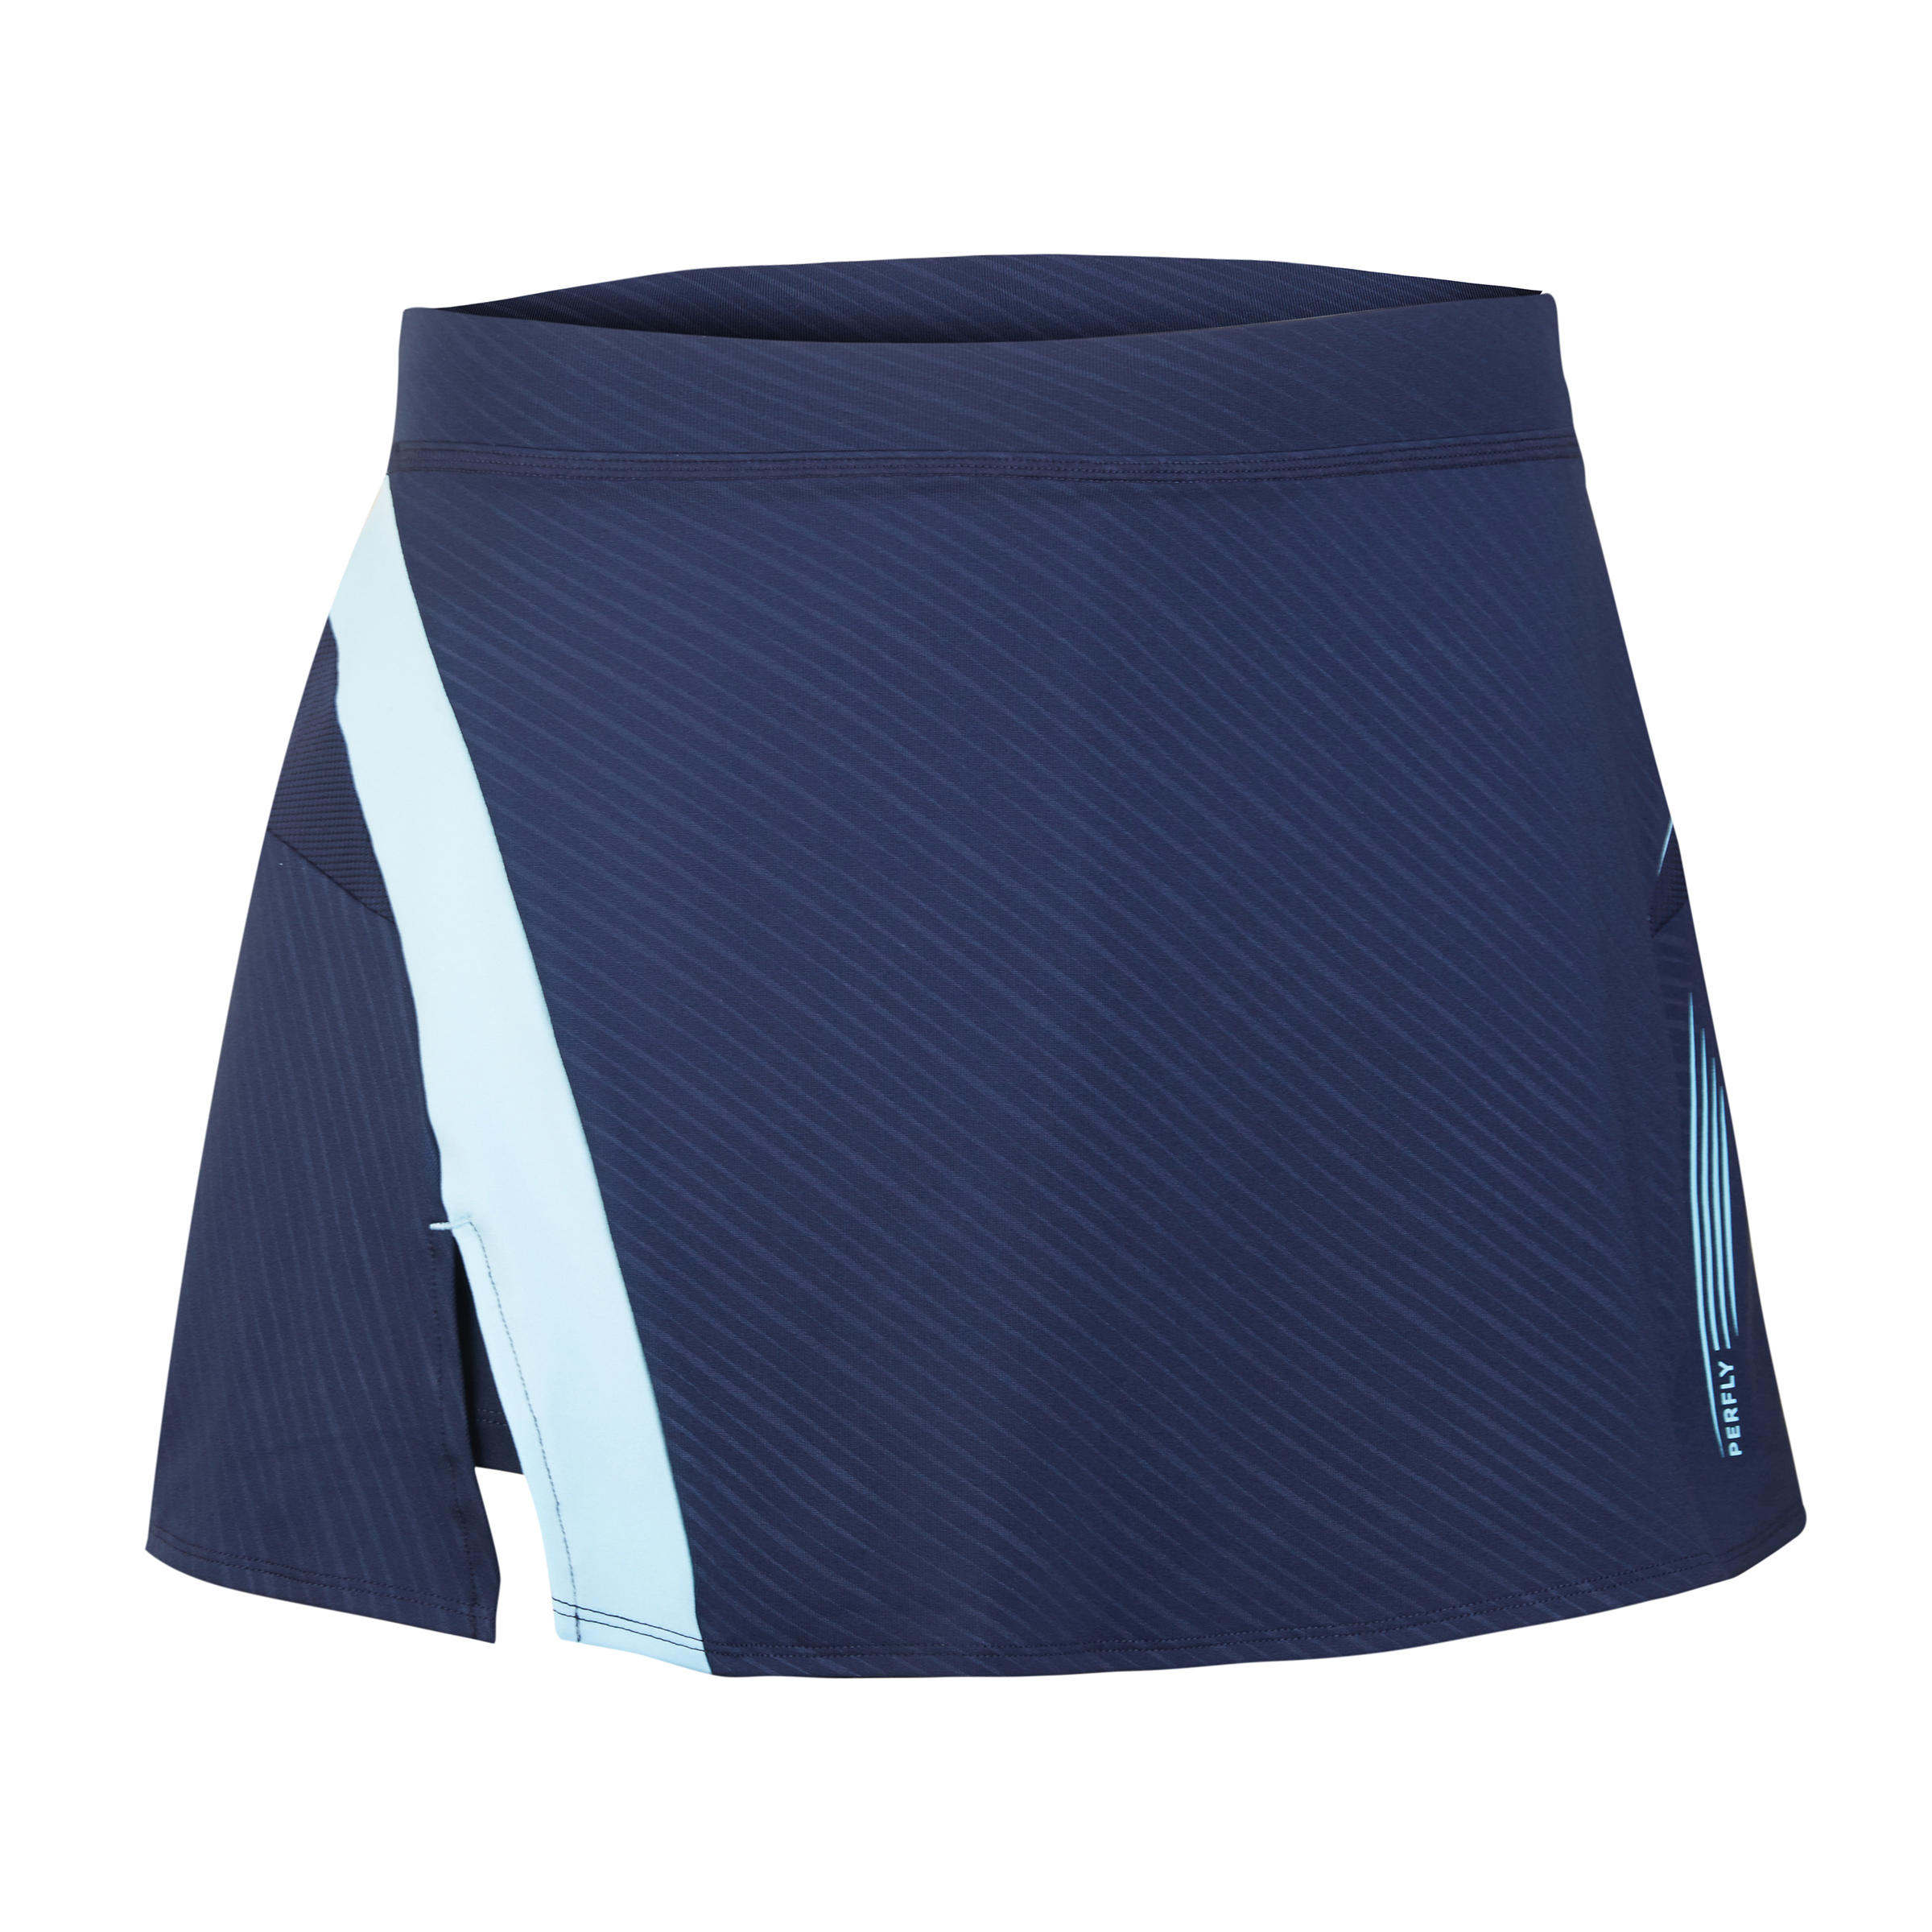 SKIRT 560 W NAVY BLUE